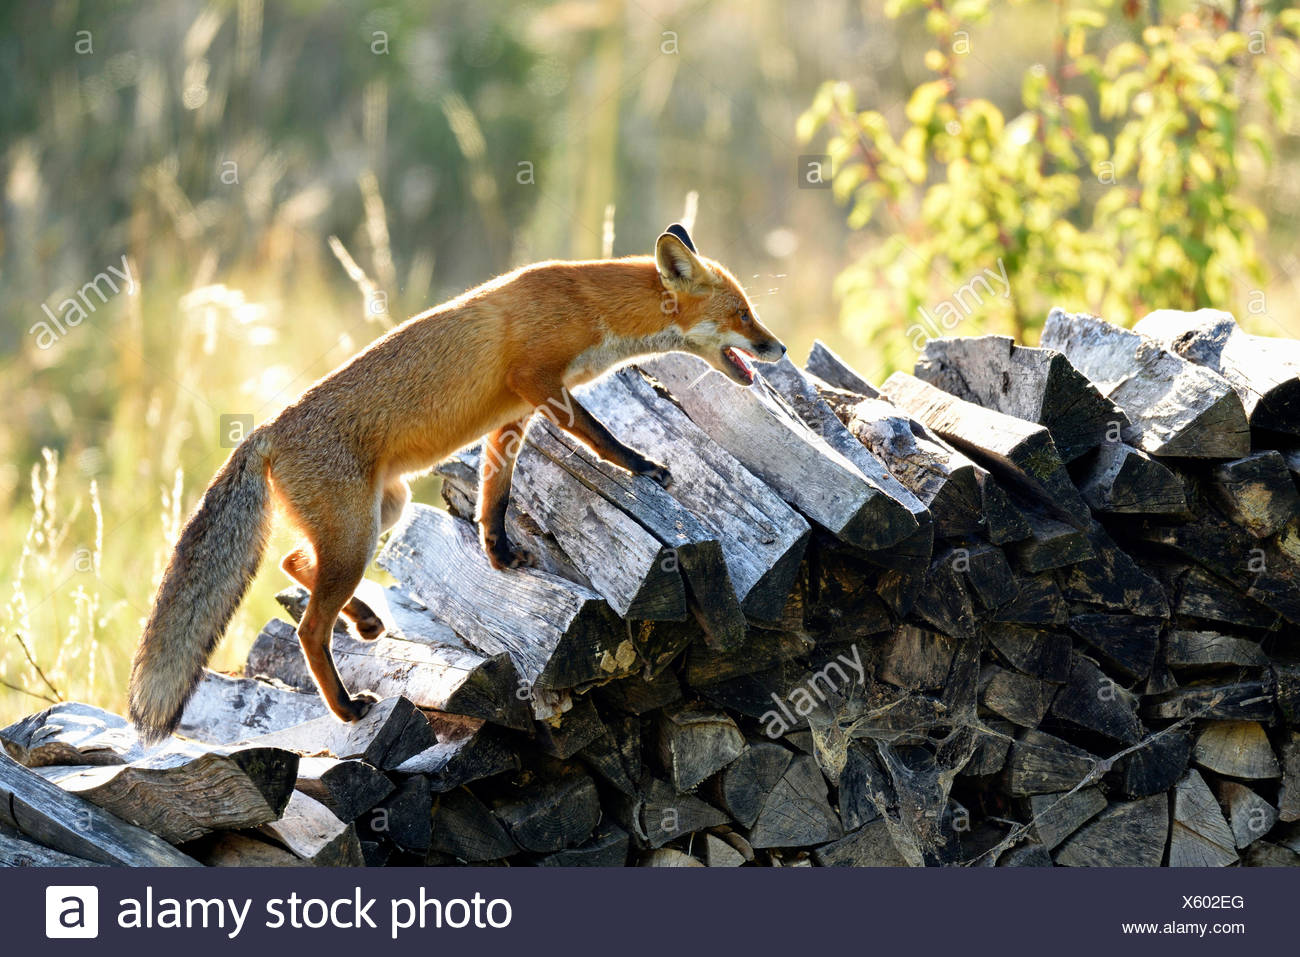 Red fox (Vulpes vulpes) walking along a wood pile, Canton of Zurich, Switzerland - Stock Image